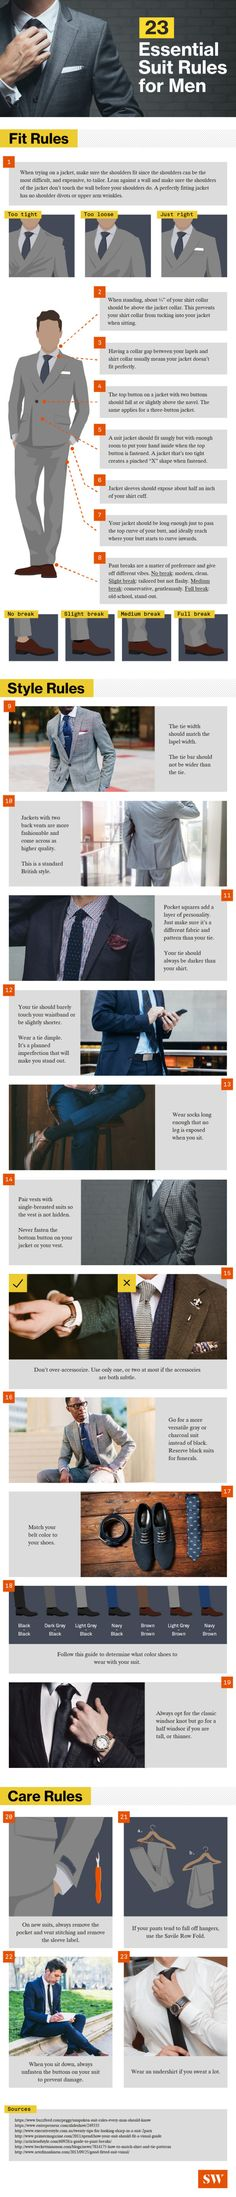 Compared to women's formalwear, a men's suit looks like the easiest look to pull off in a pinch, but it's not as simple as it seems.Whether you're looking to wow them at a job interview or suiting up for a wedding, these twenty-three essential suit rules will help you look your best.Via SW.Lookin' good with infographics.